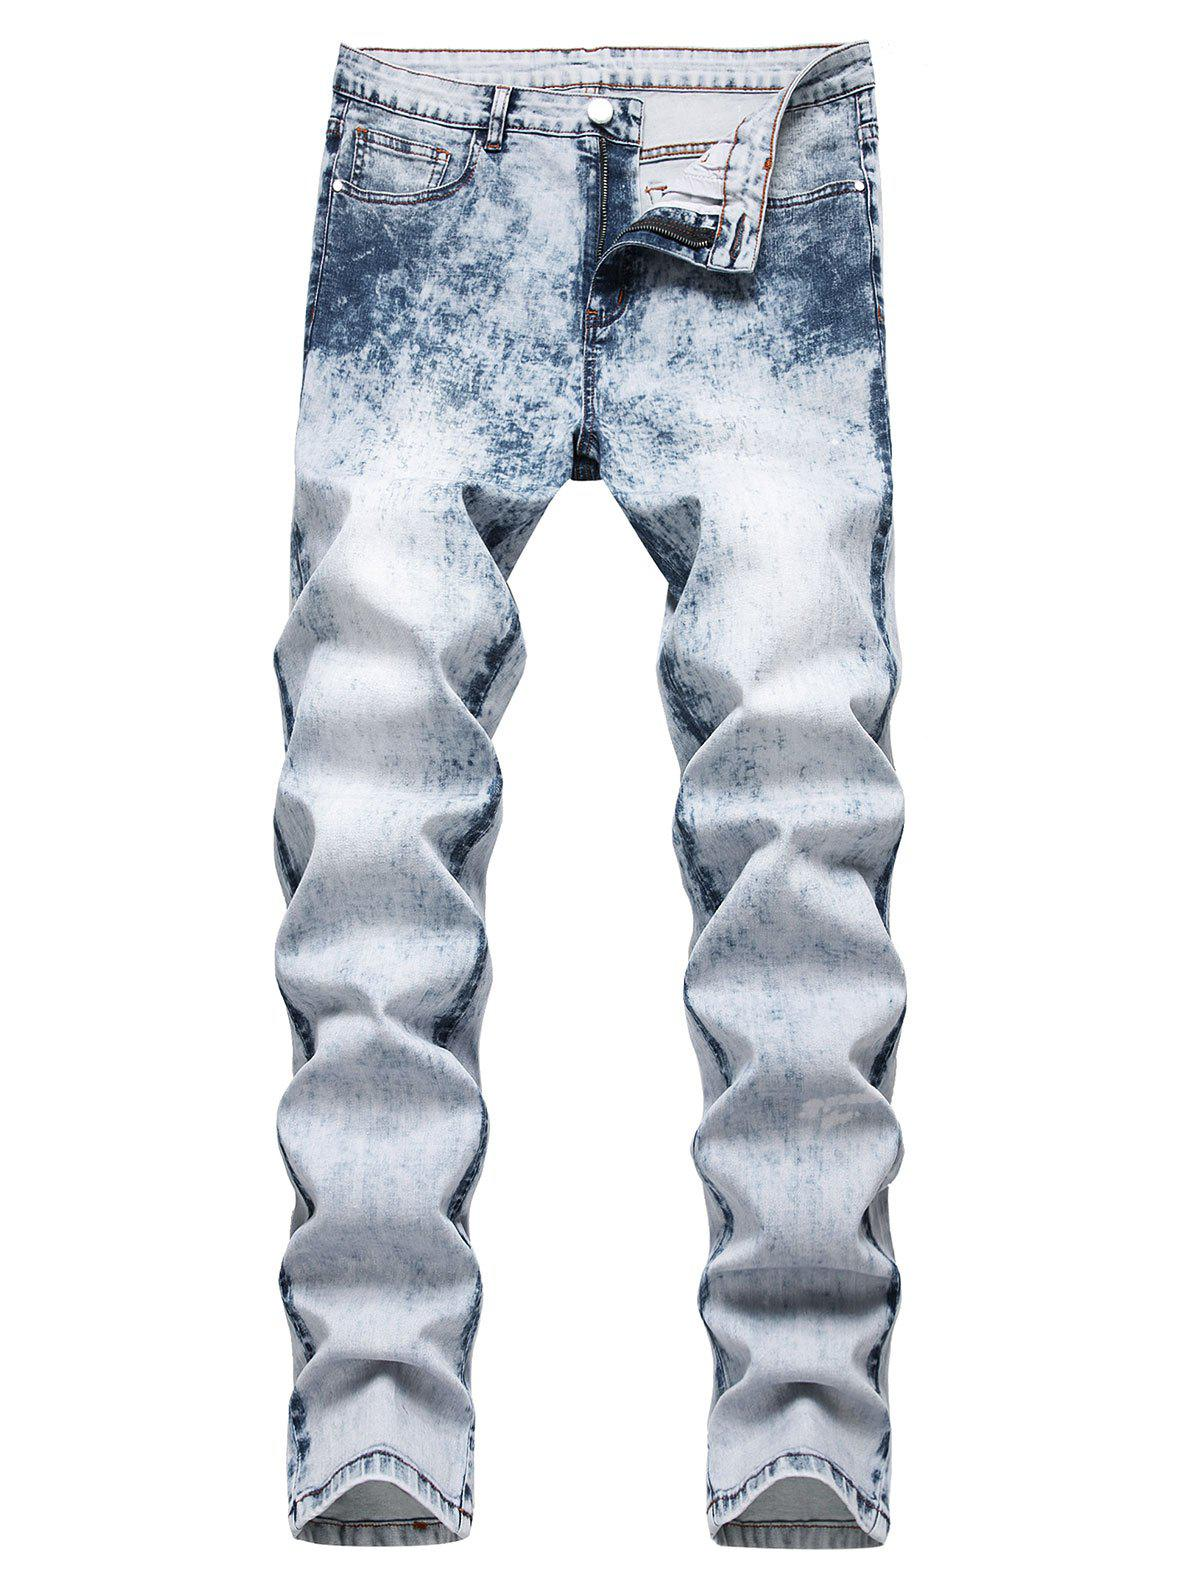 Bleach Wash Tapered Jeans - LIGHT BLUE 38